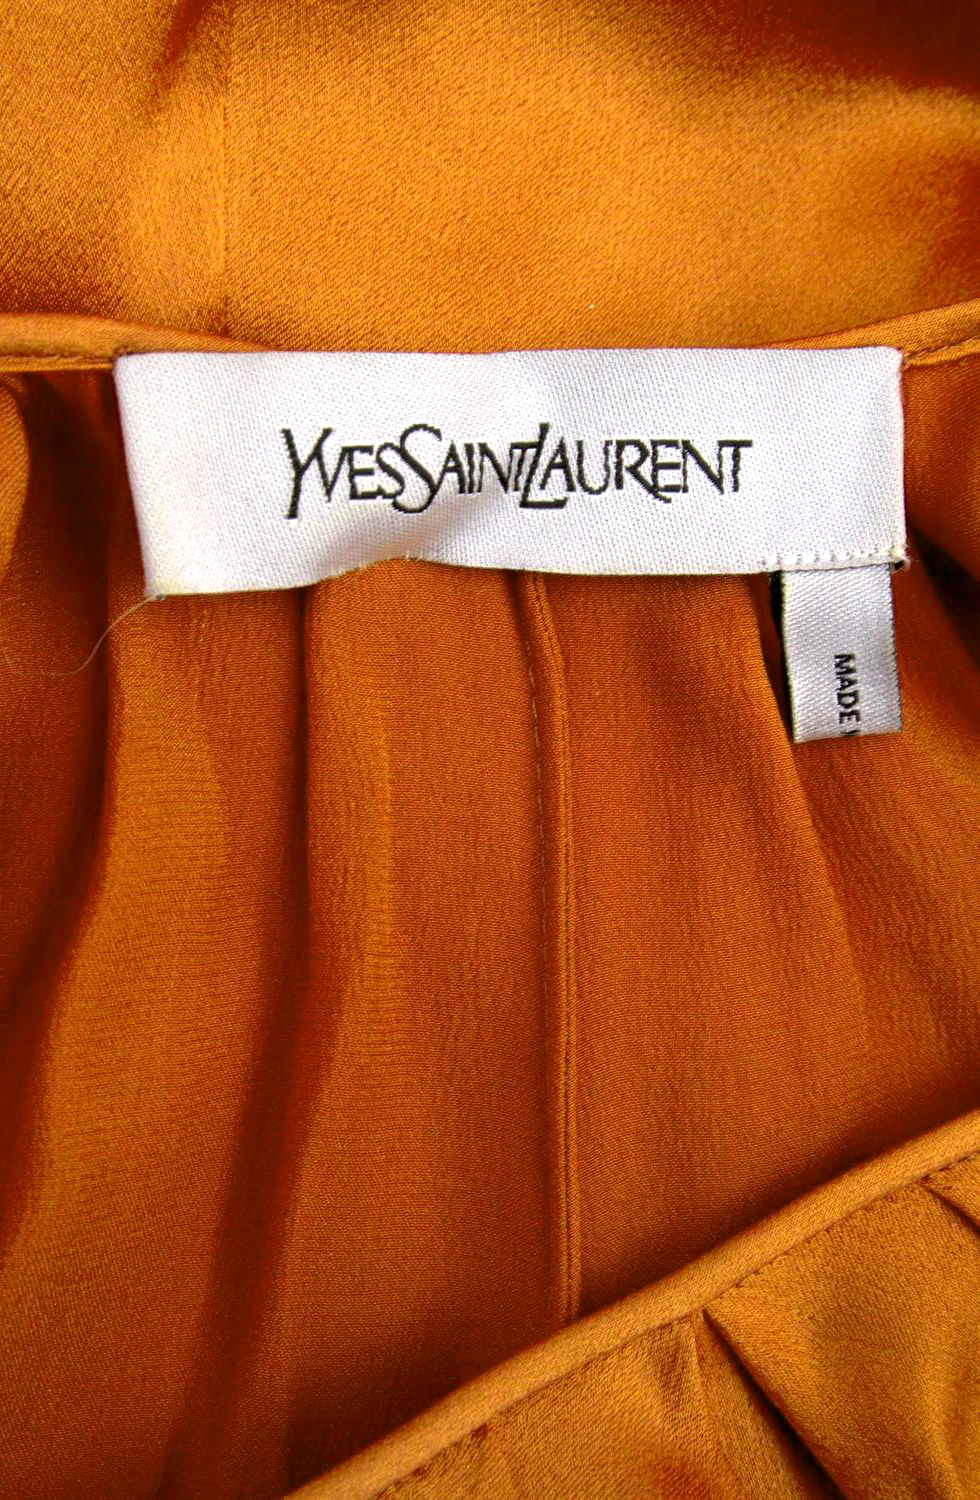 Yves Saint Laurent / 5 Avenue Marceau / Best fashion documentaries via www.fashionedbylove.co.uk